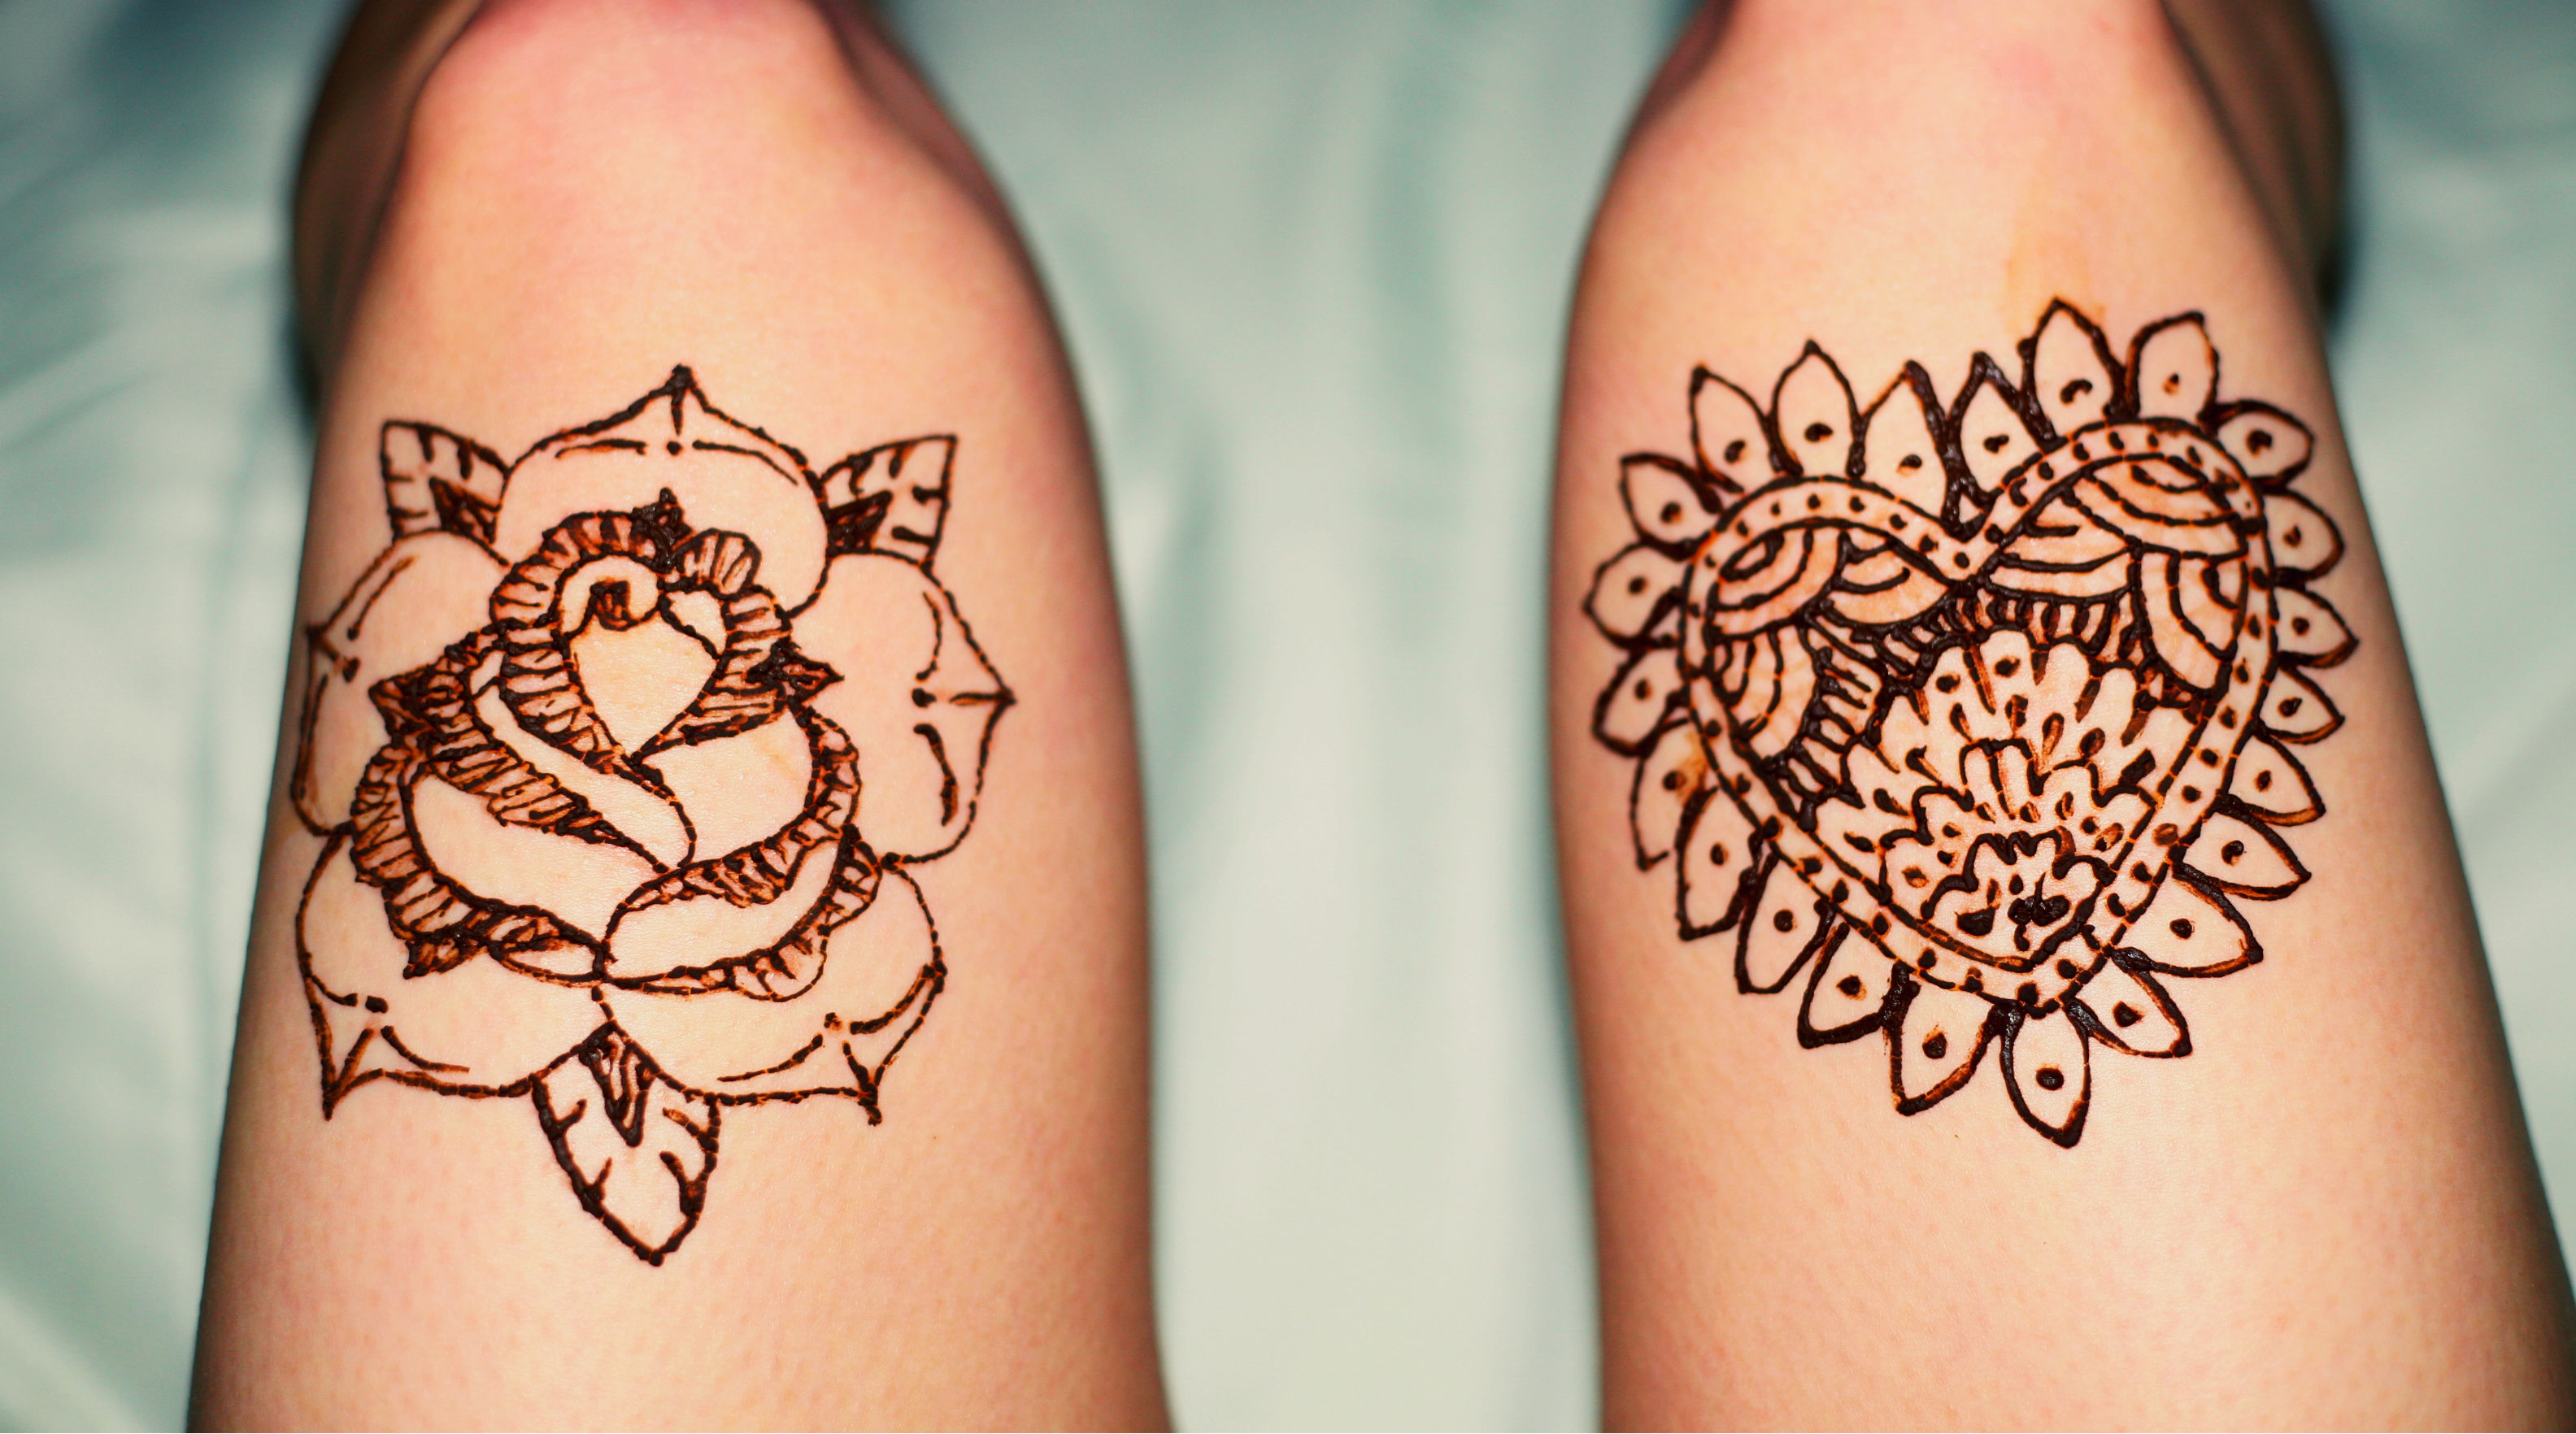 Leg Mehndi Designs Easy Only : Henna leg tattoo designs makedes